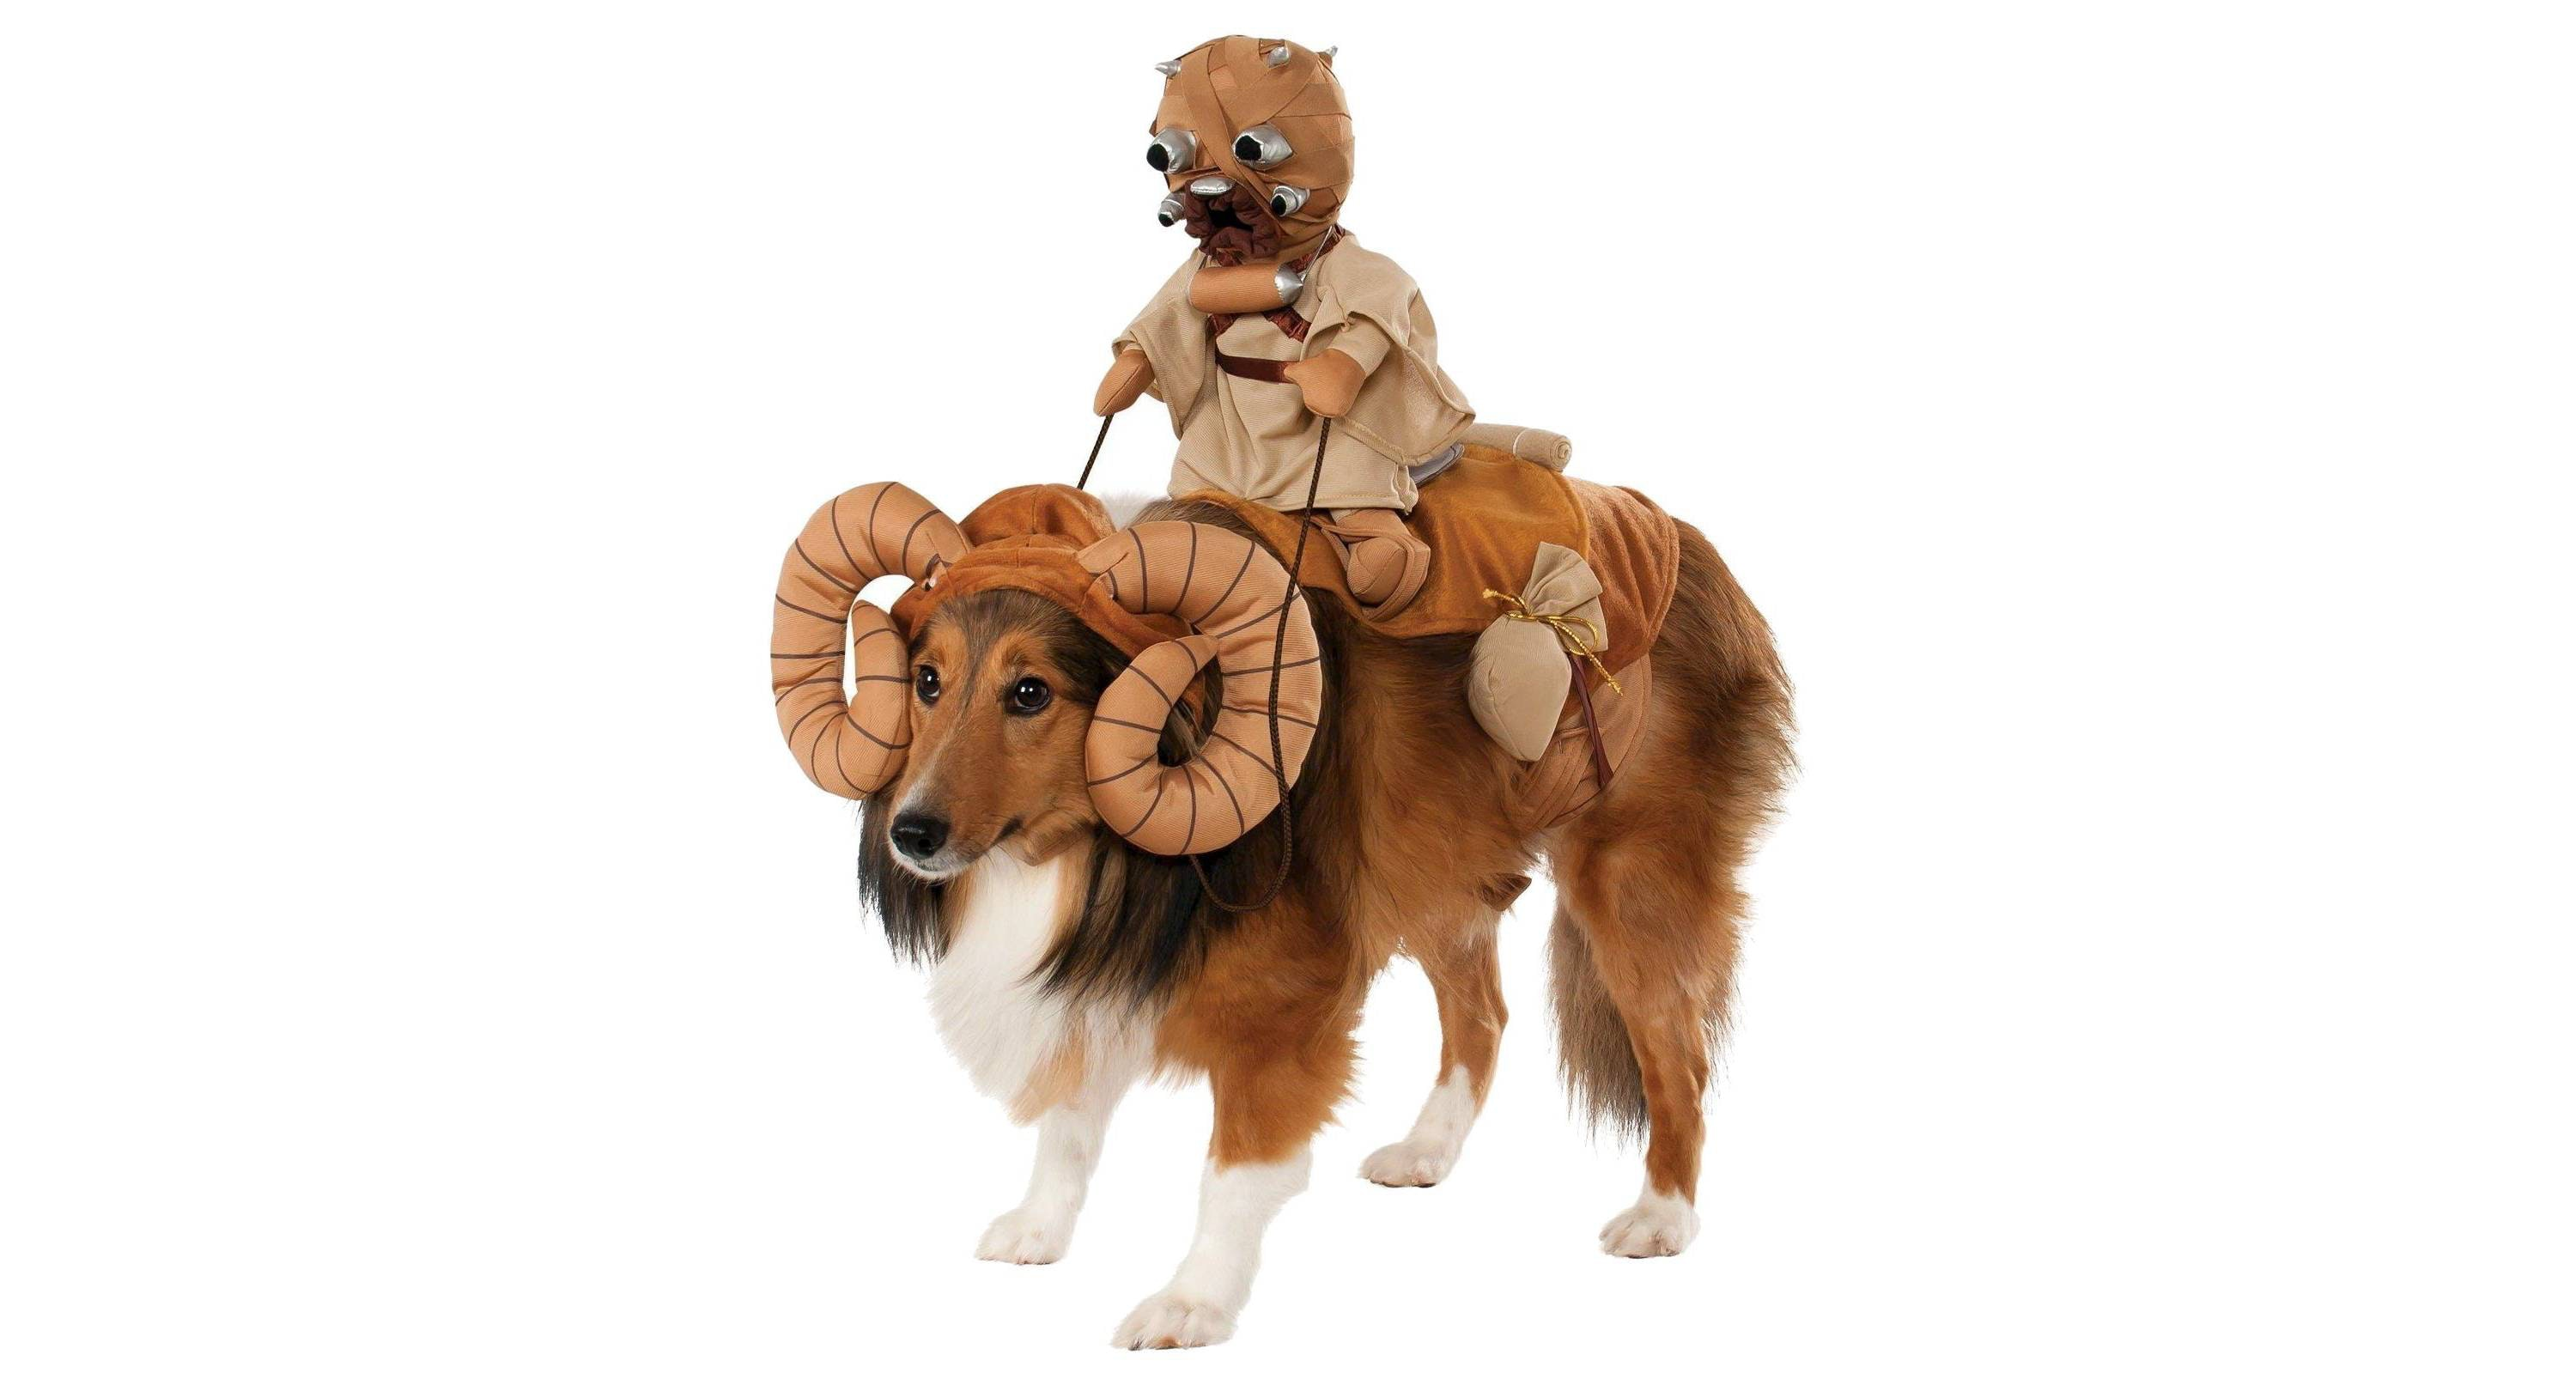 This costume that turns your dog into a mighty Bantha